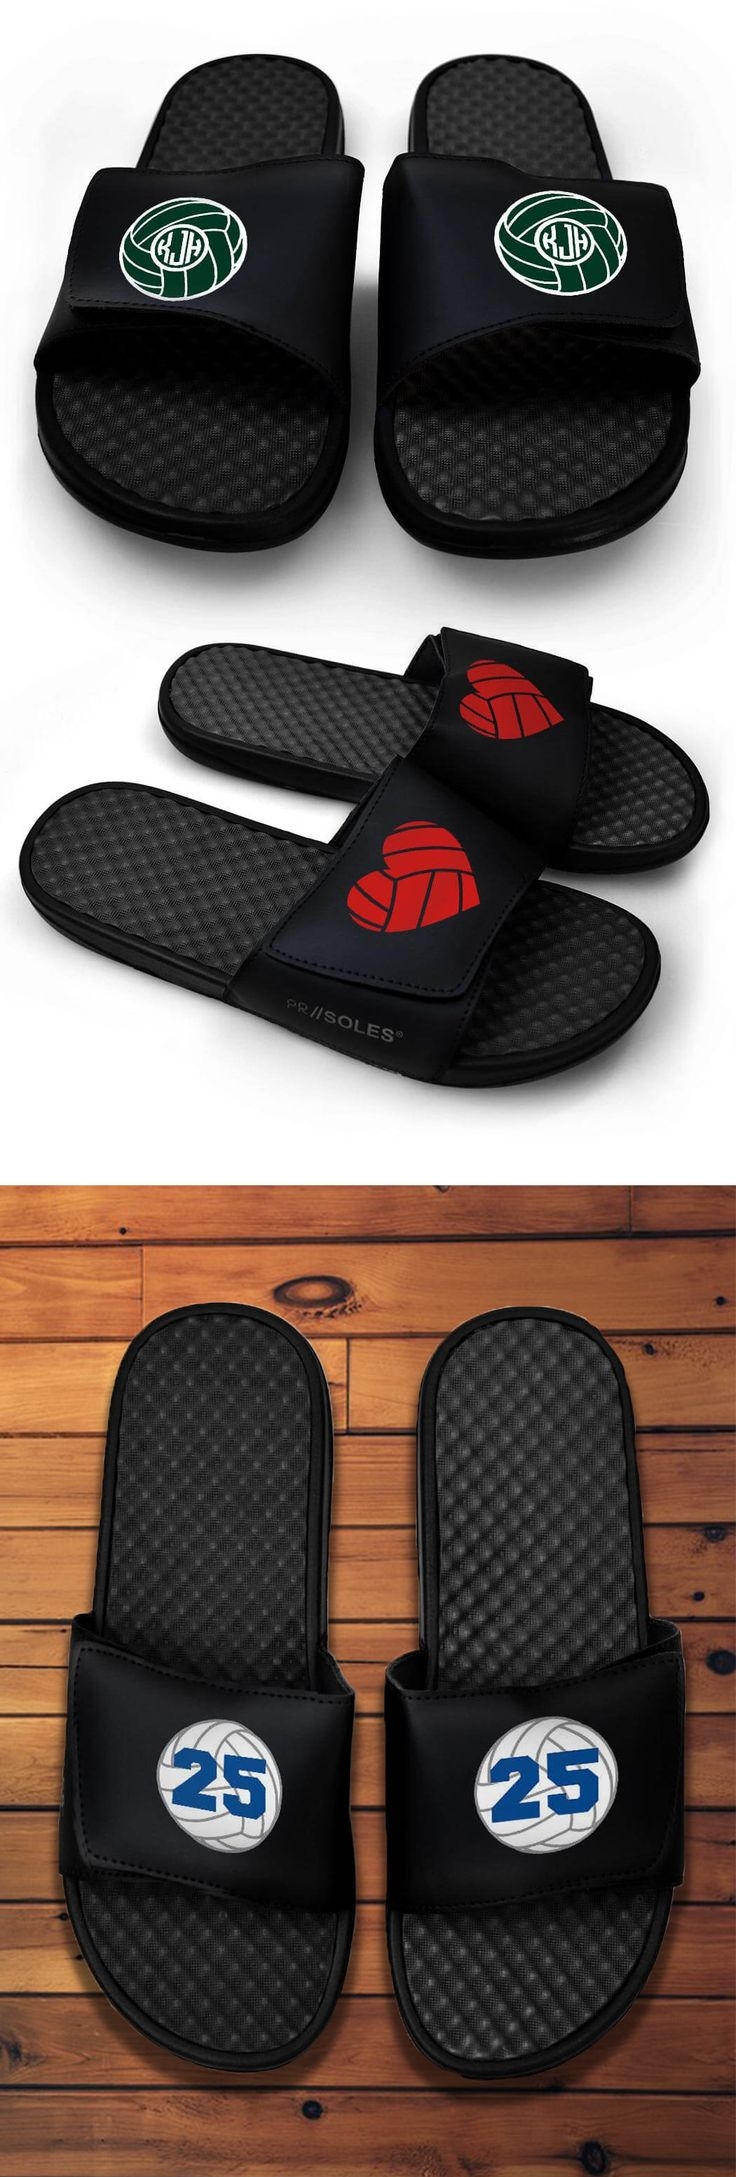 Black volleyball slide sandals available NOW at chalktalksports.com!